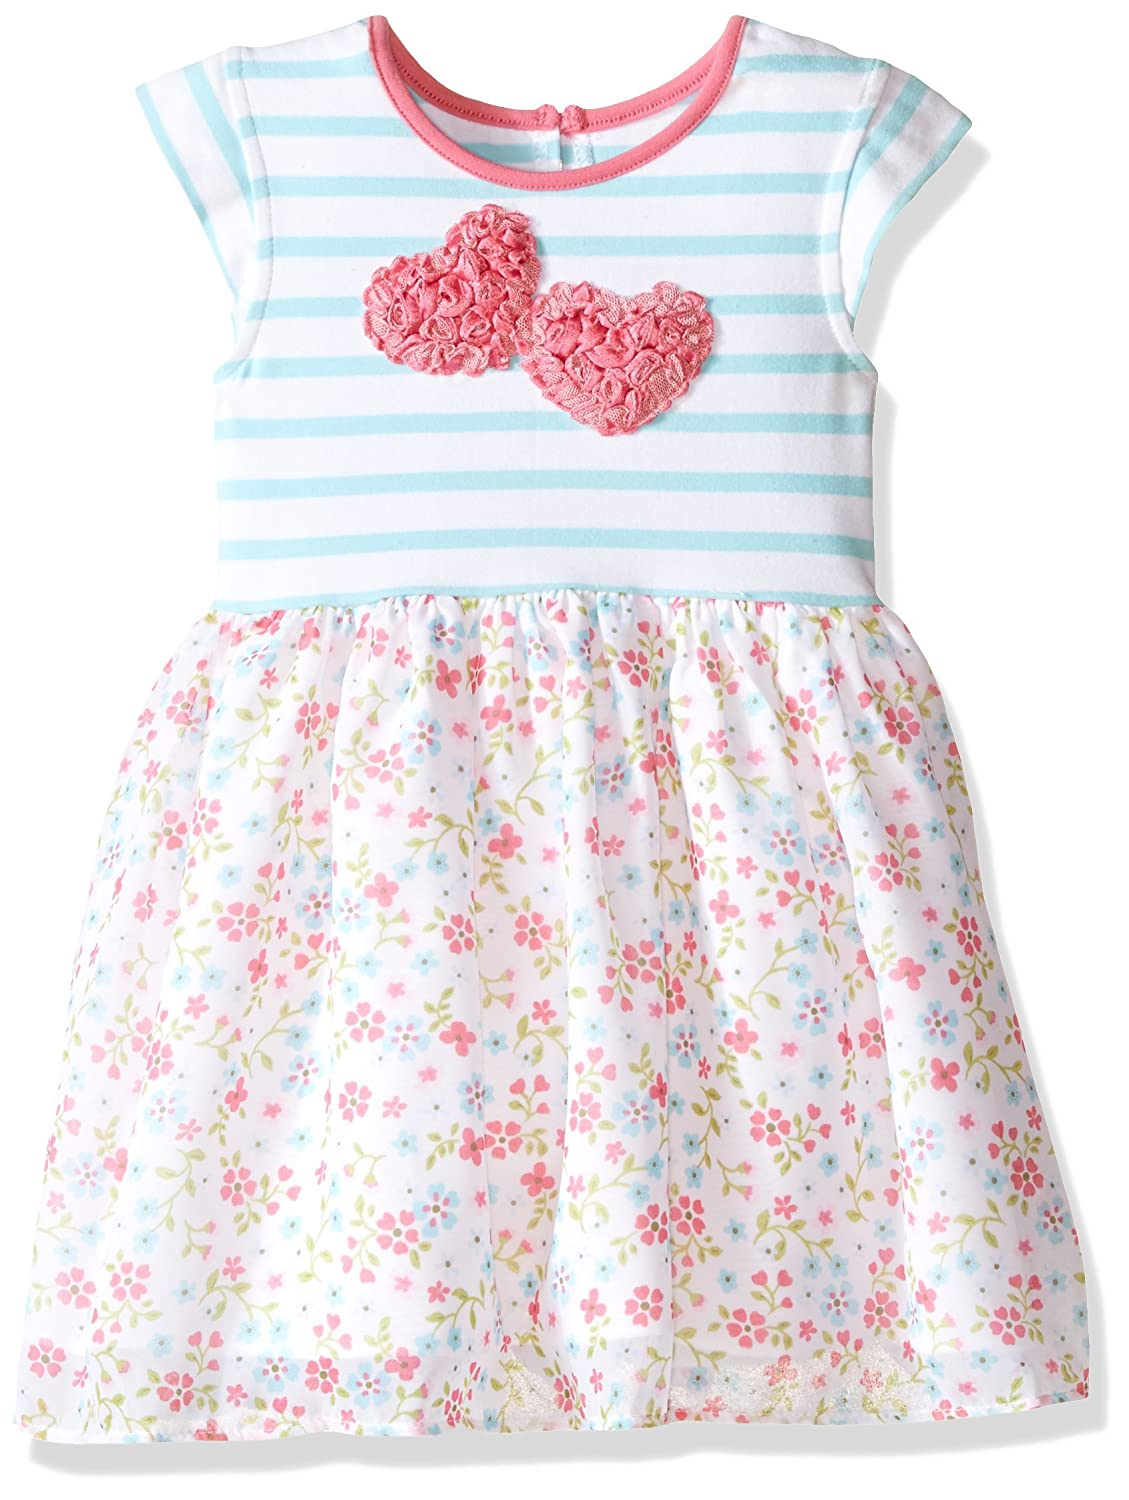 Marmellata Little Girls' Heart Knit Play Dress